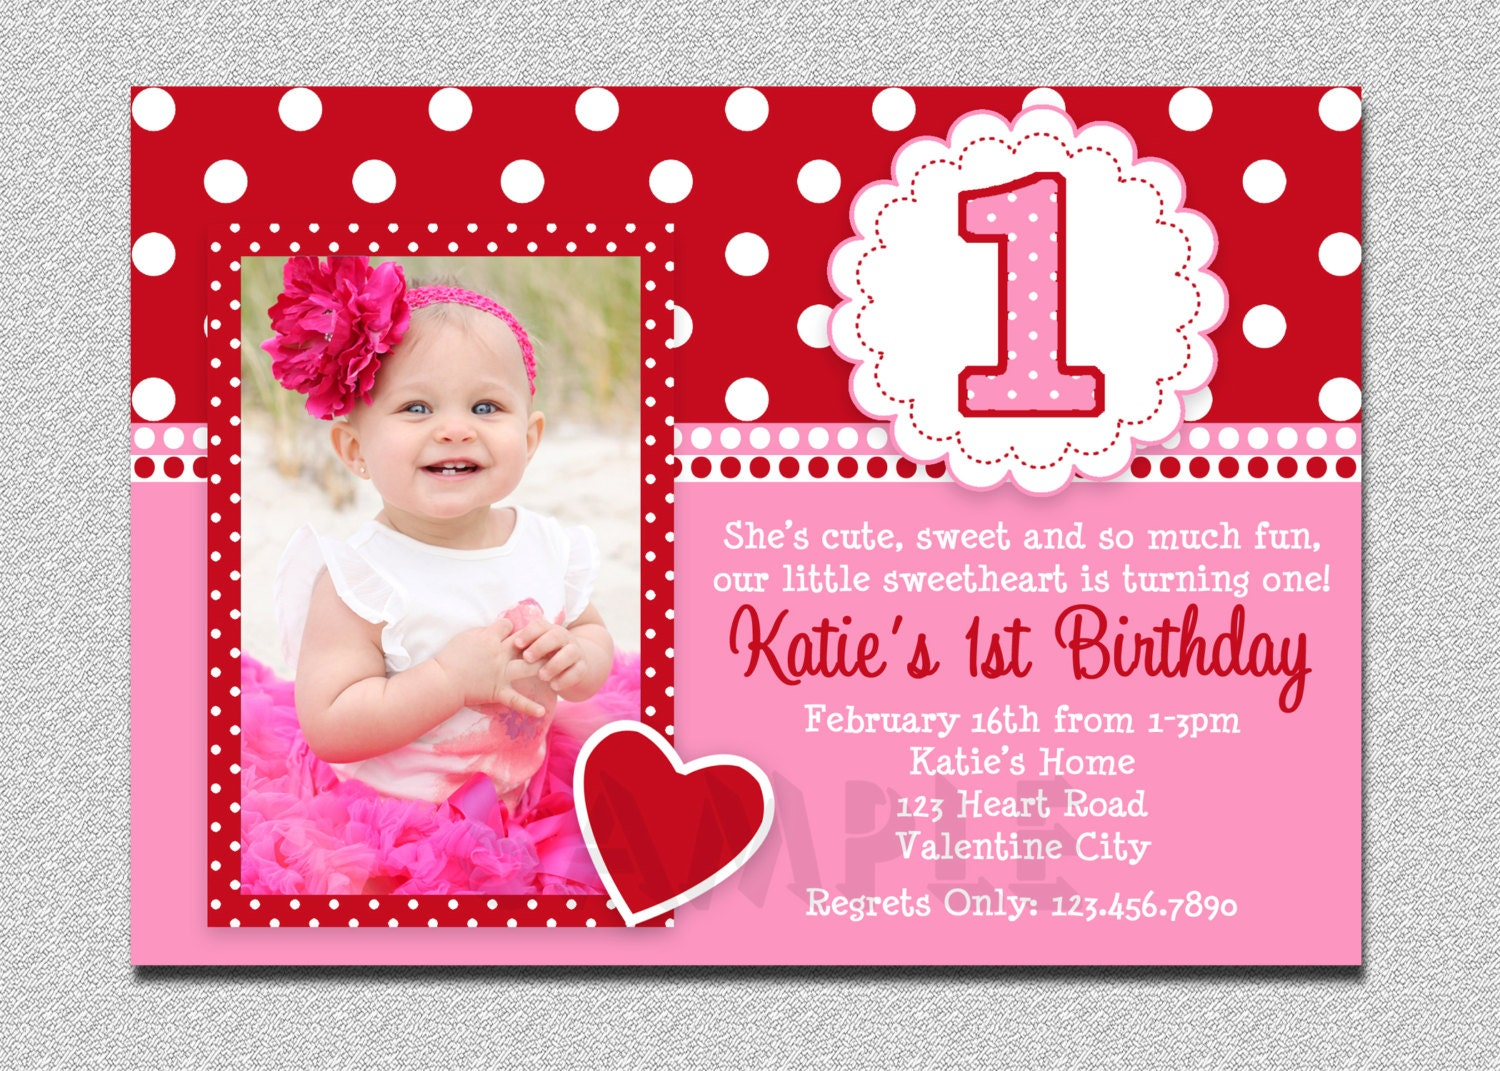 Valentines Birthday Invitation 1st Birthday Valentines – Invitation for First Birthday Party